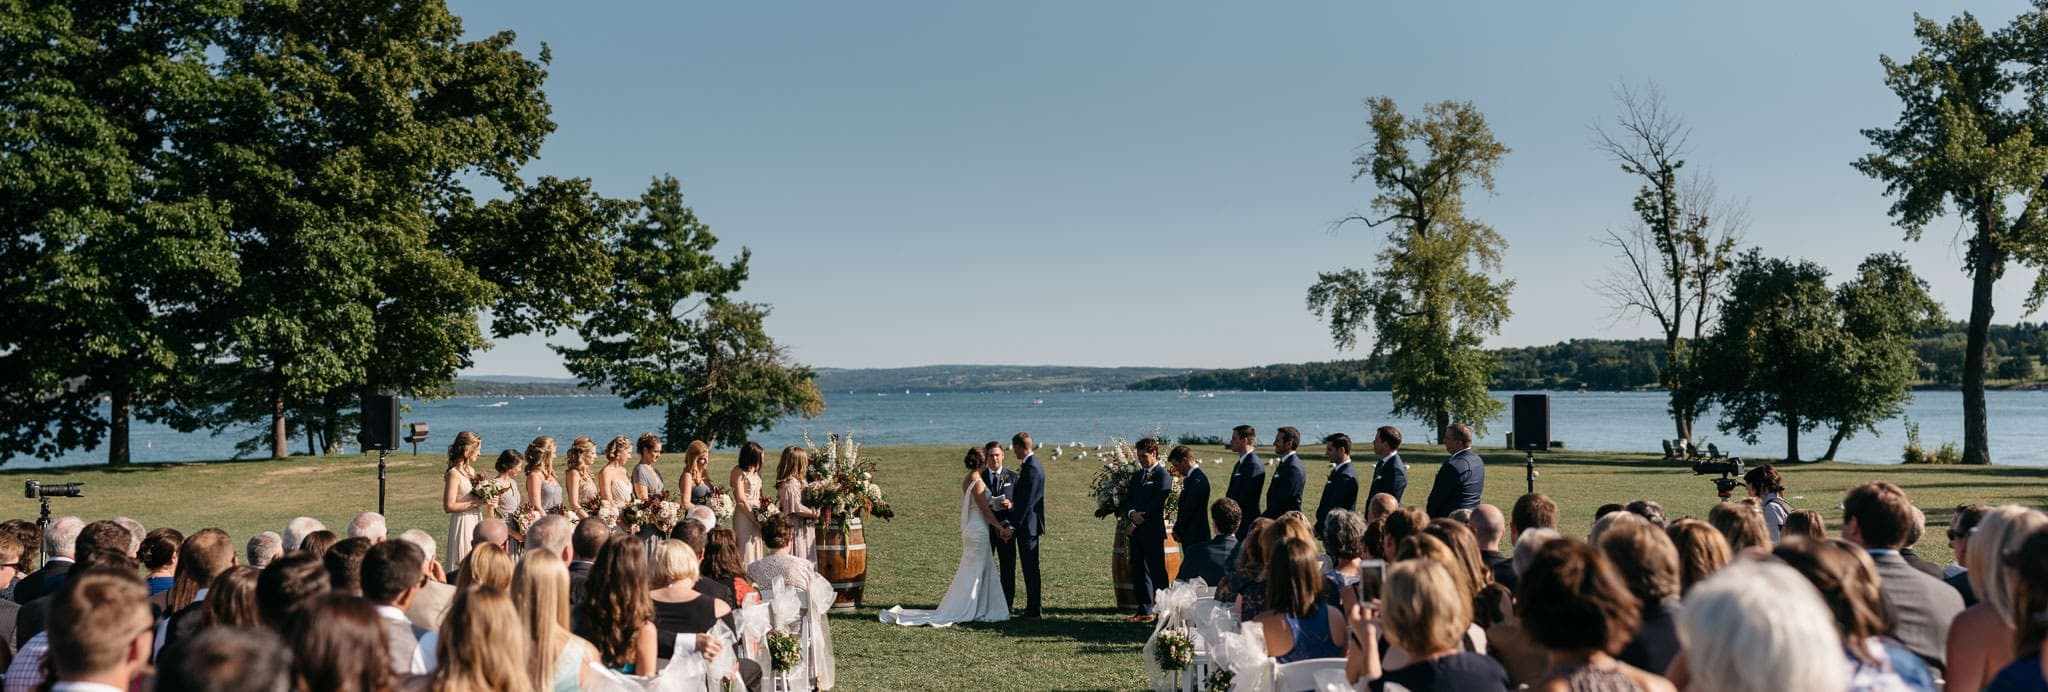 skaneateles-country-club-wedding-23